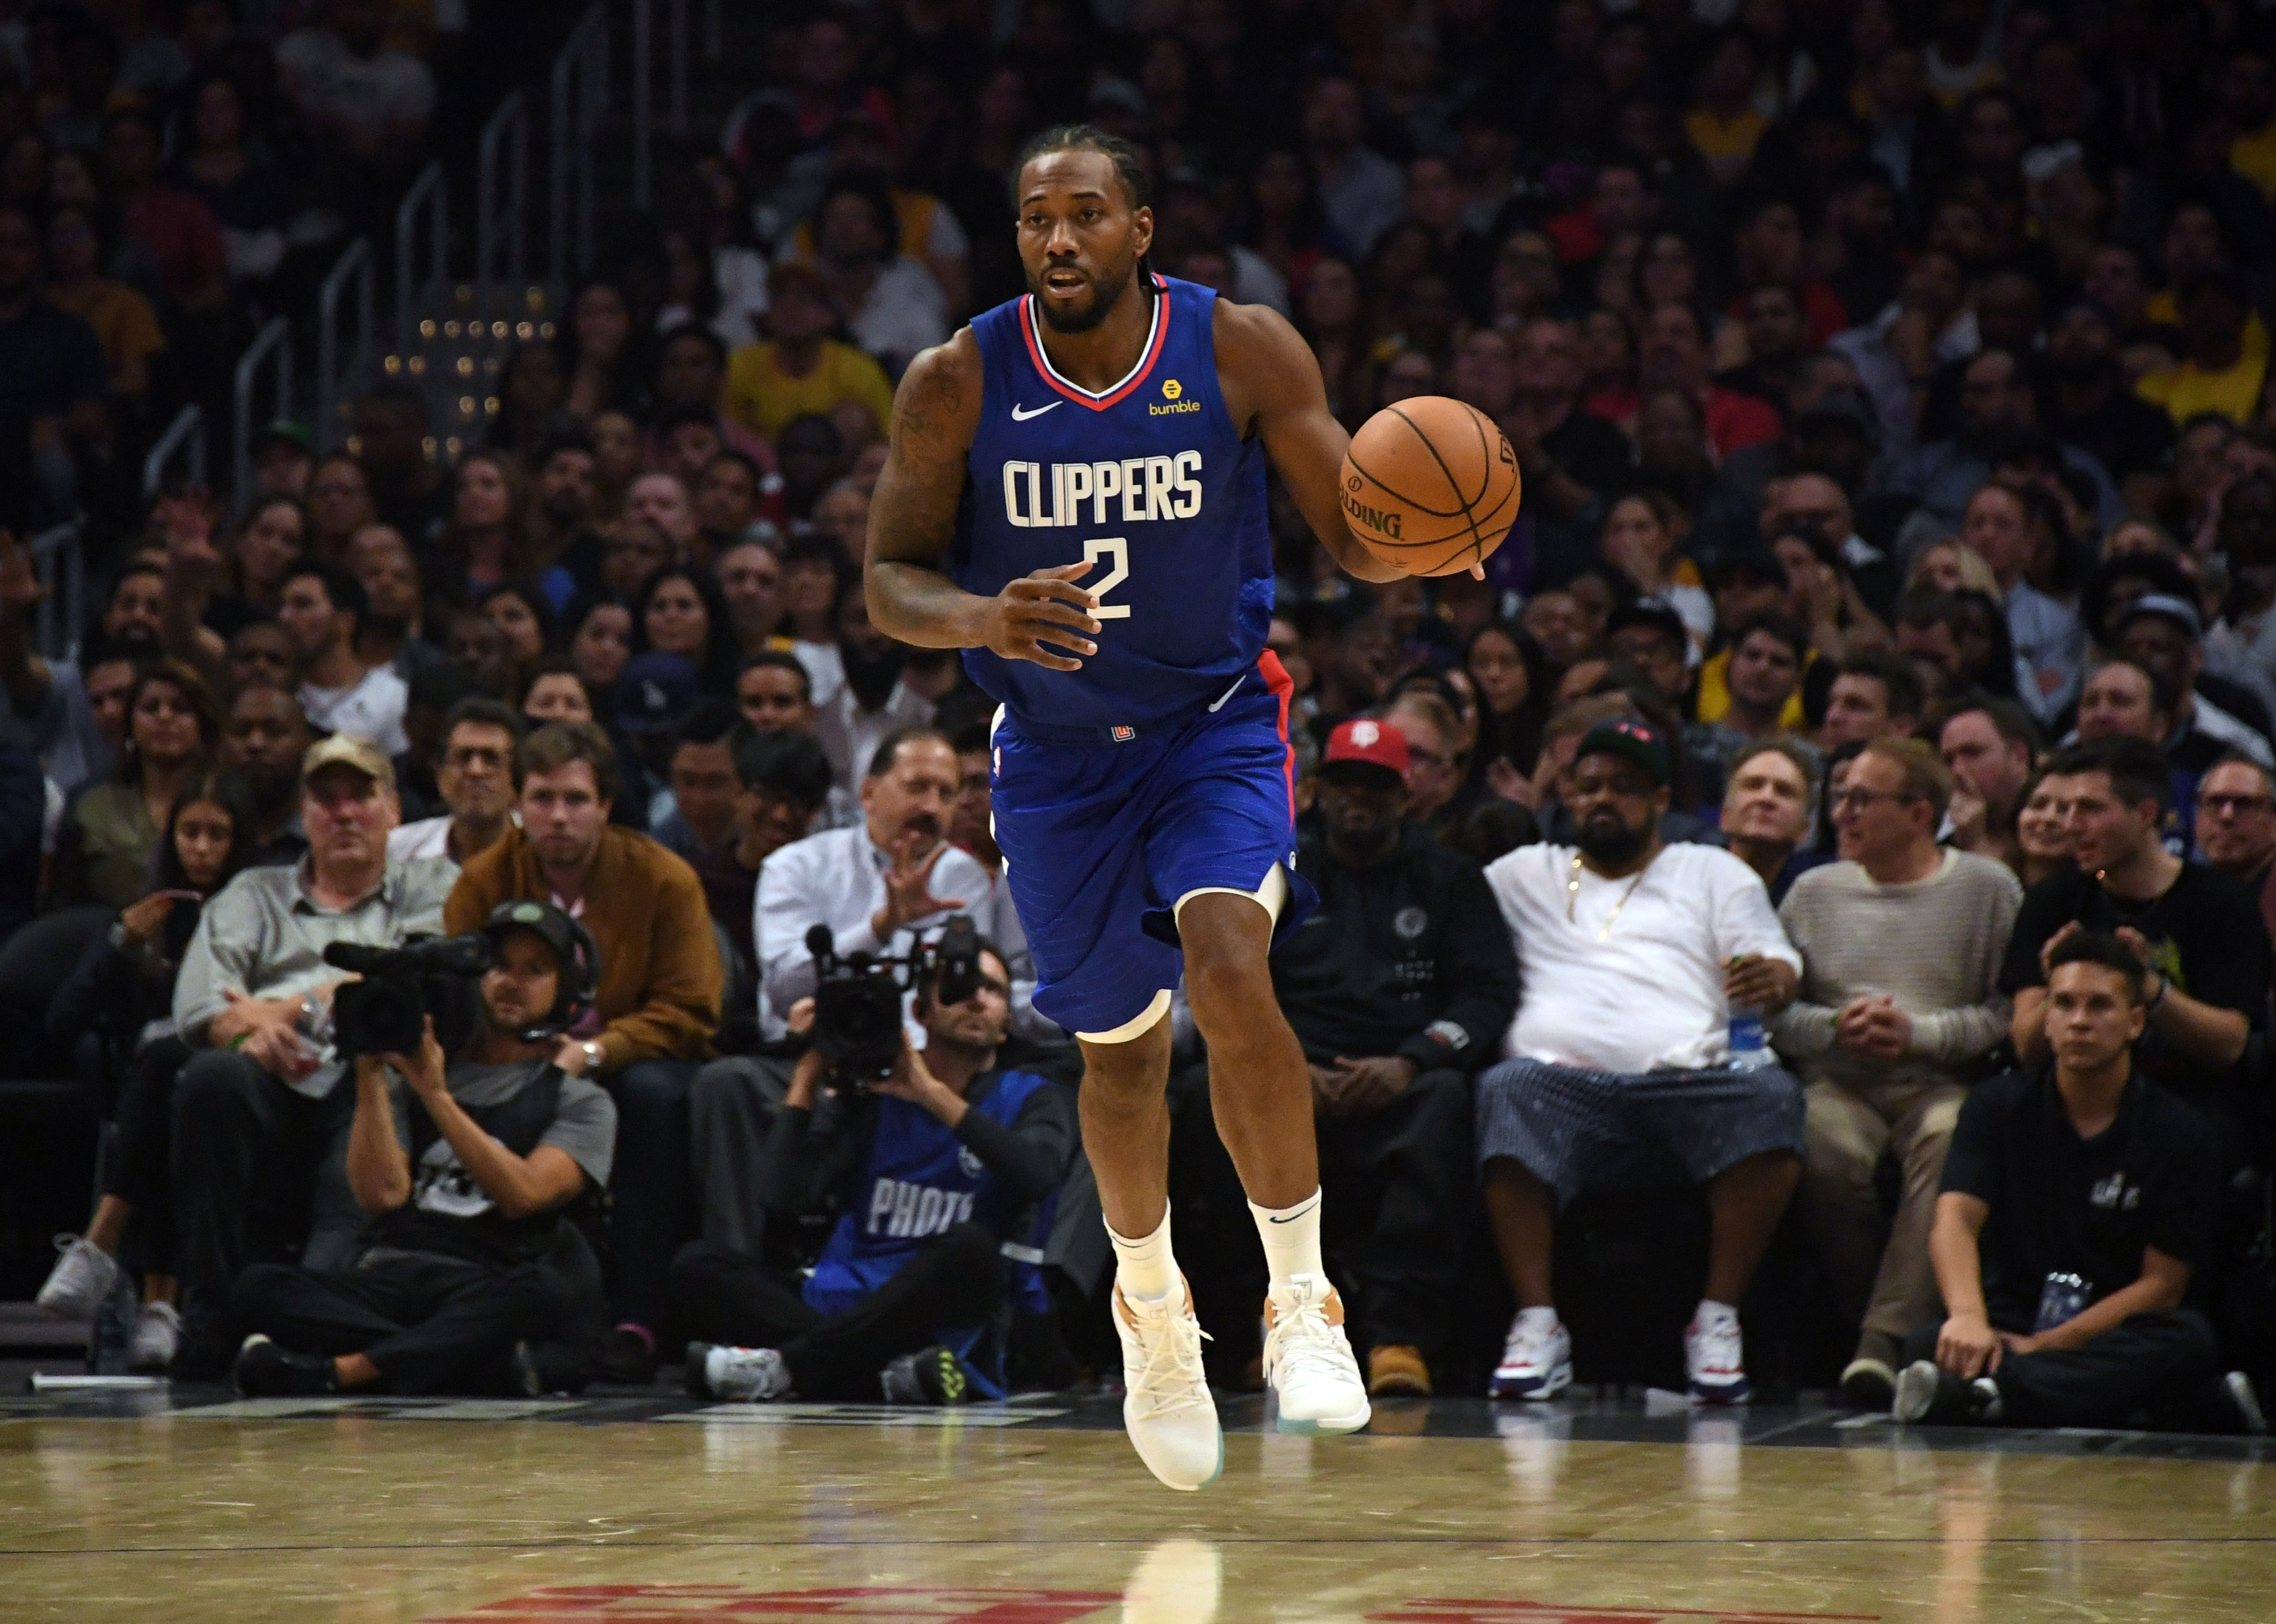 Leonard brings his NBA dominance to dangerous Clippers